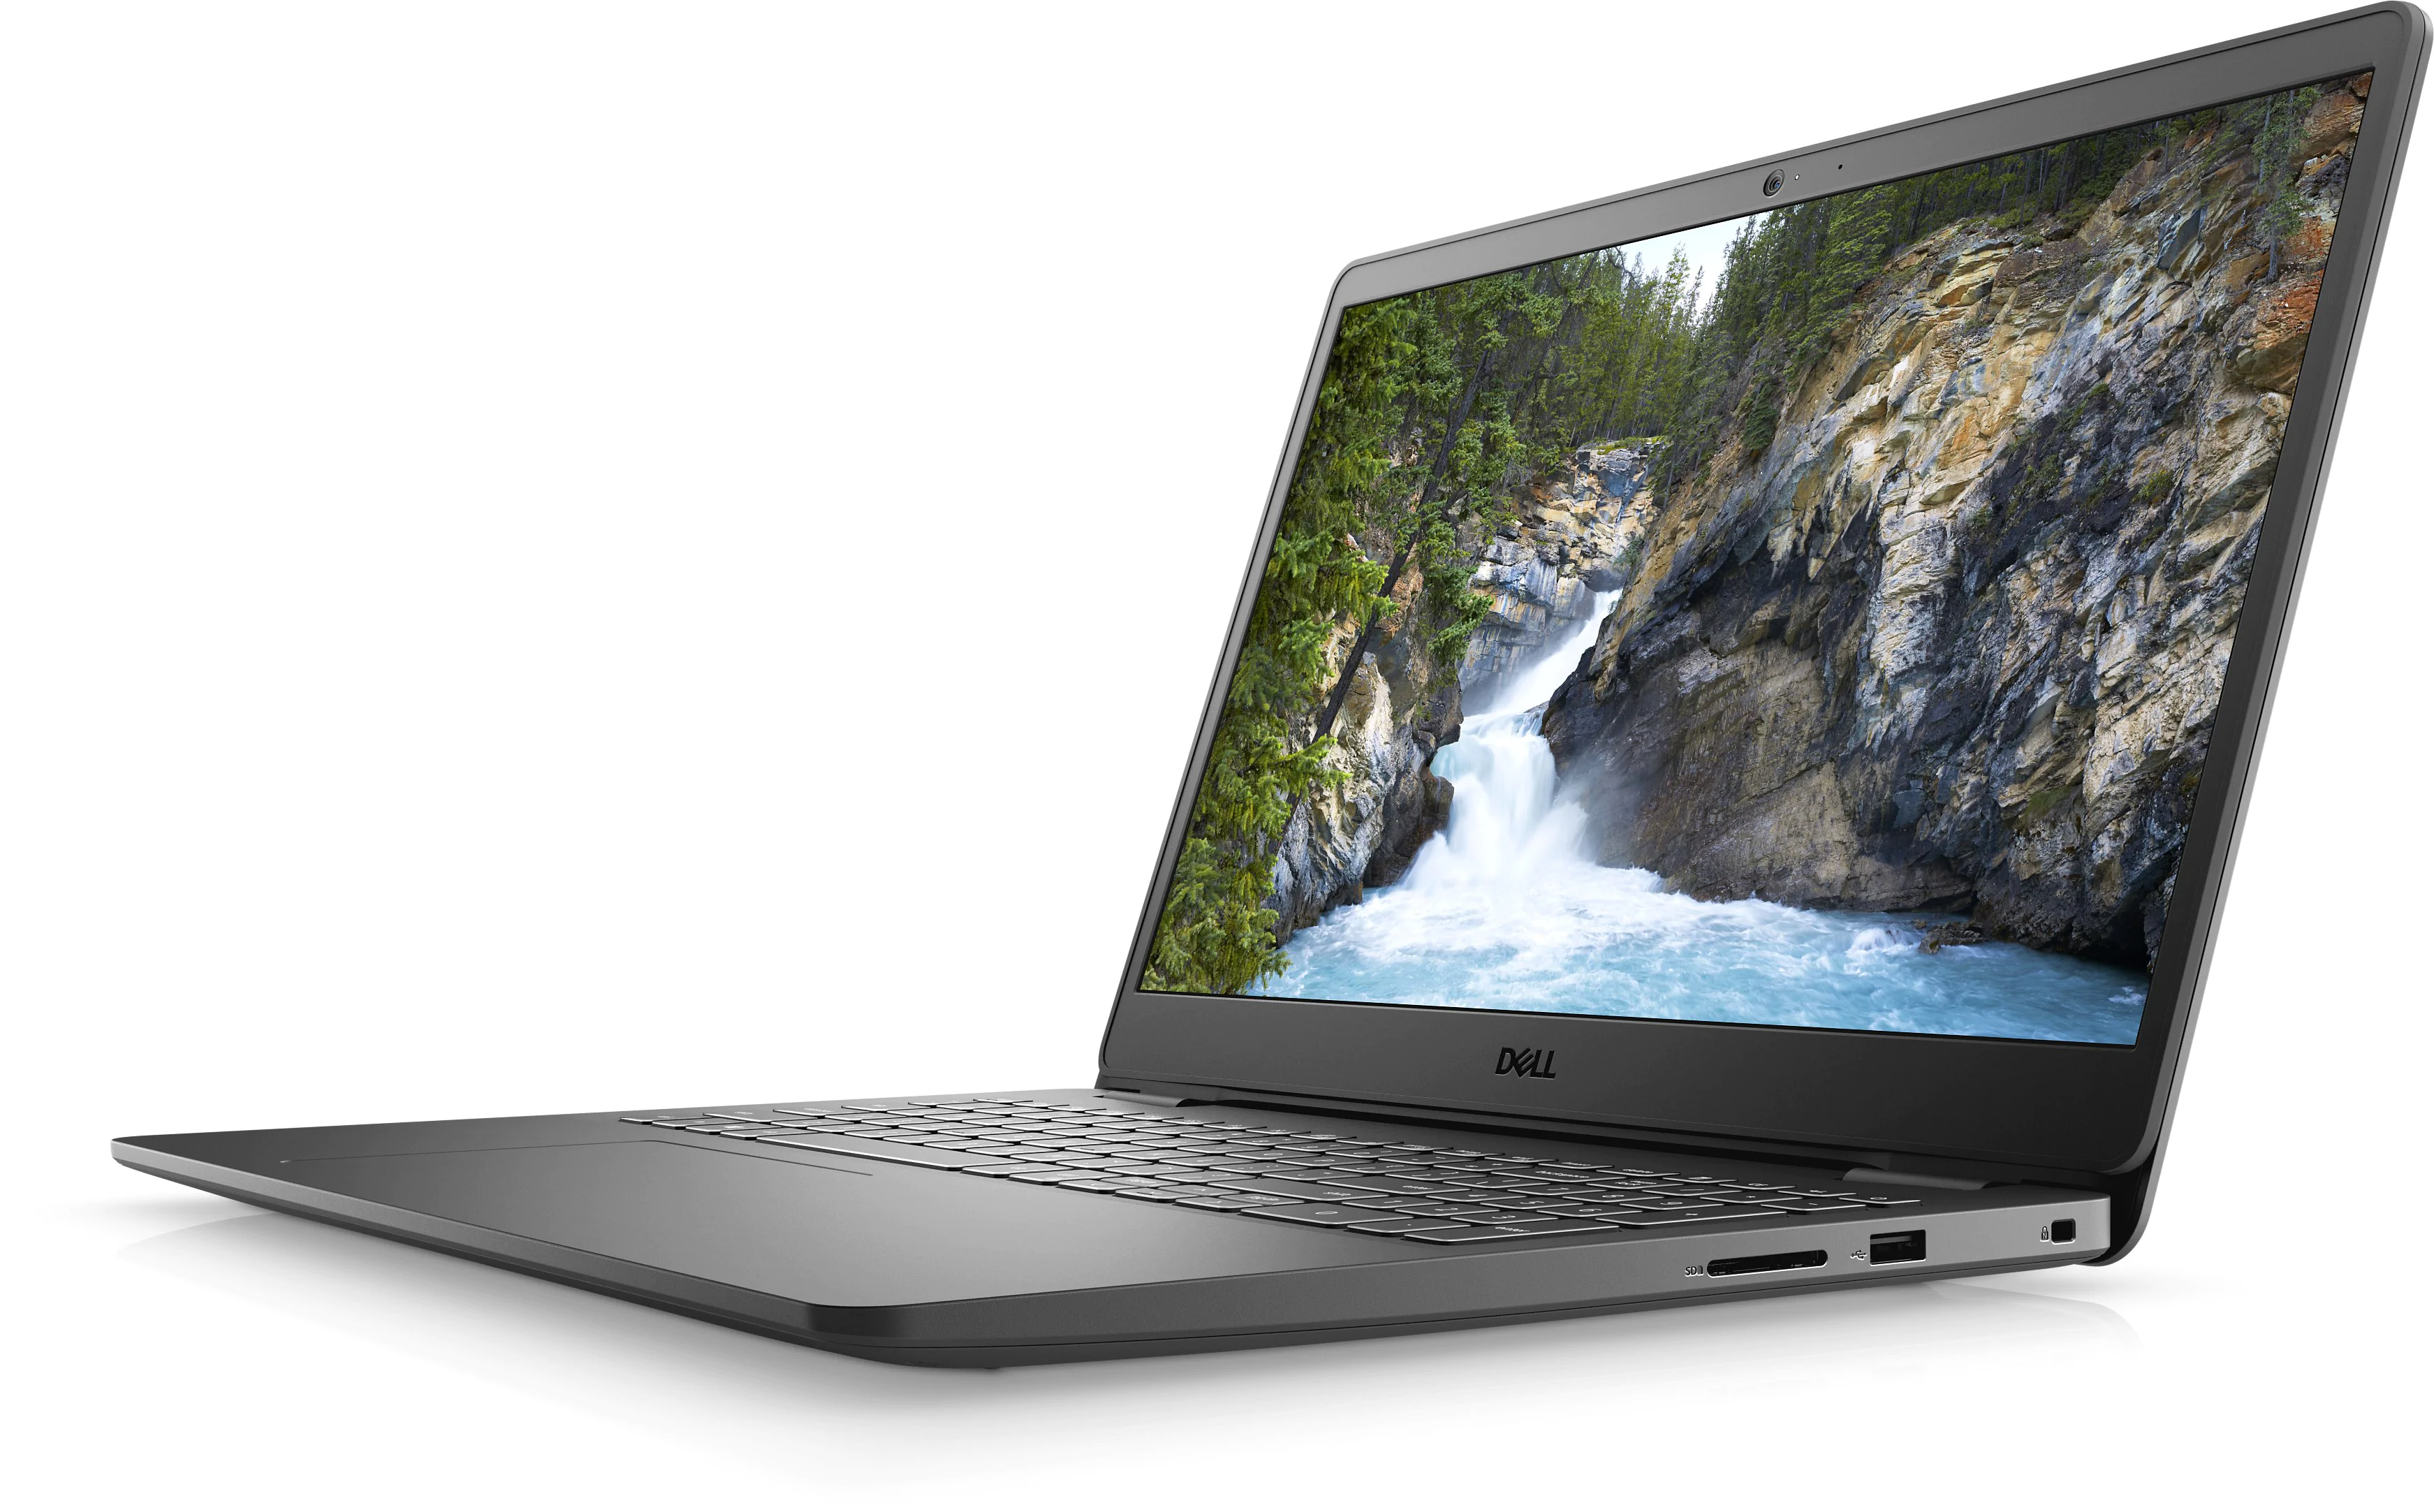 Dell Inspiron 15 3000 at an angle on a white background